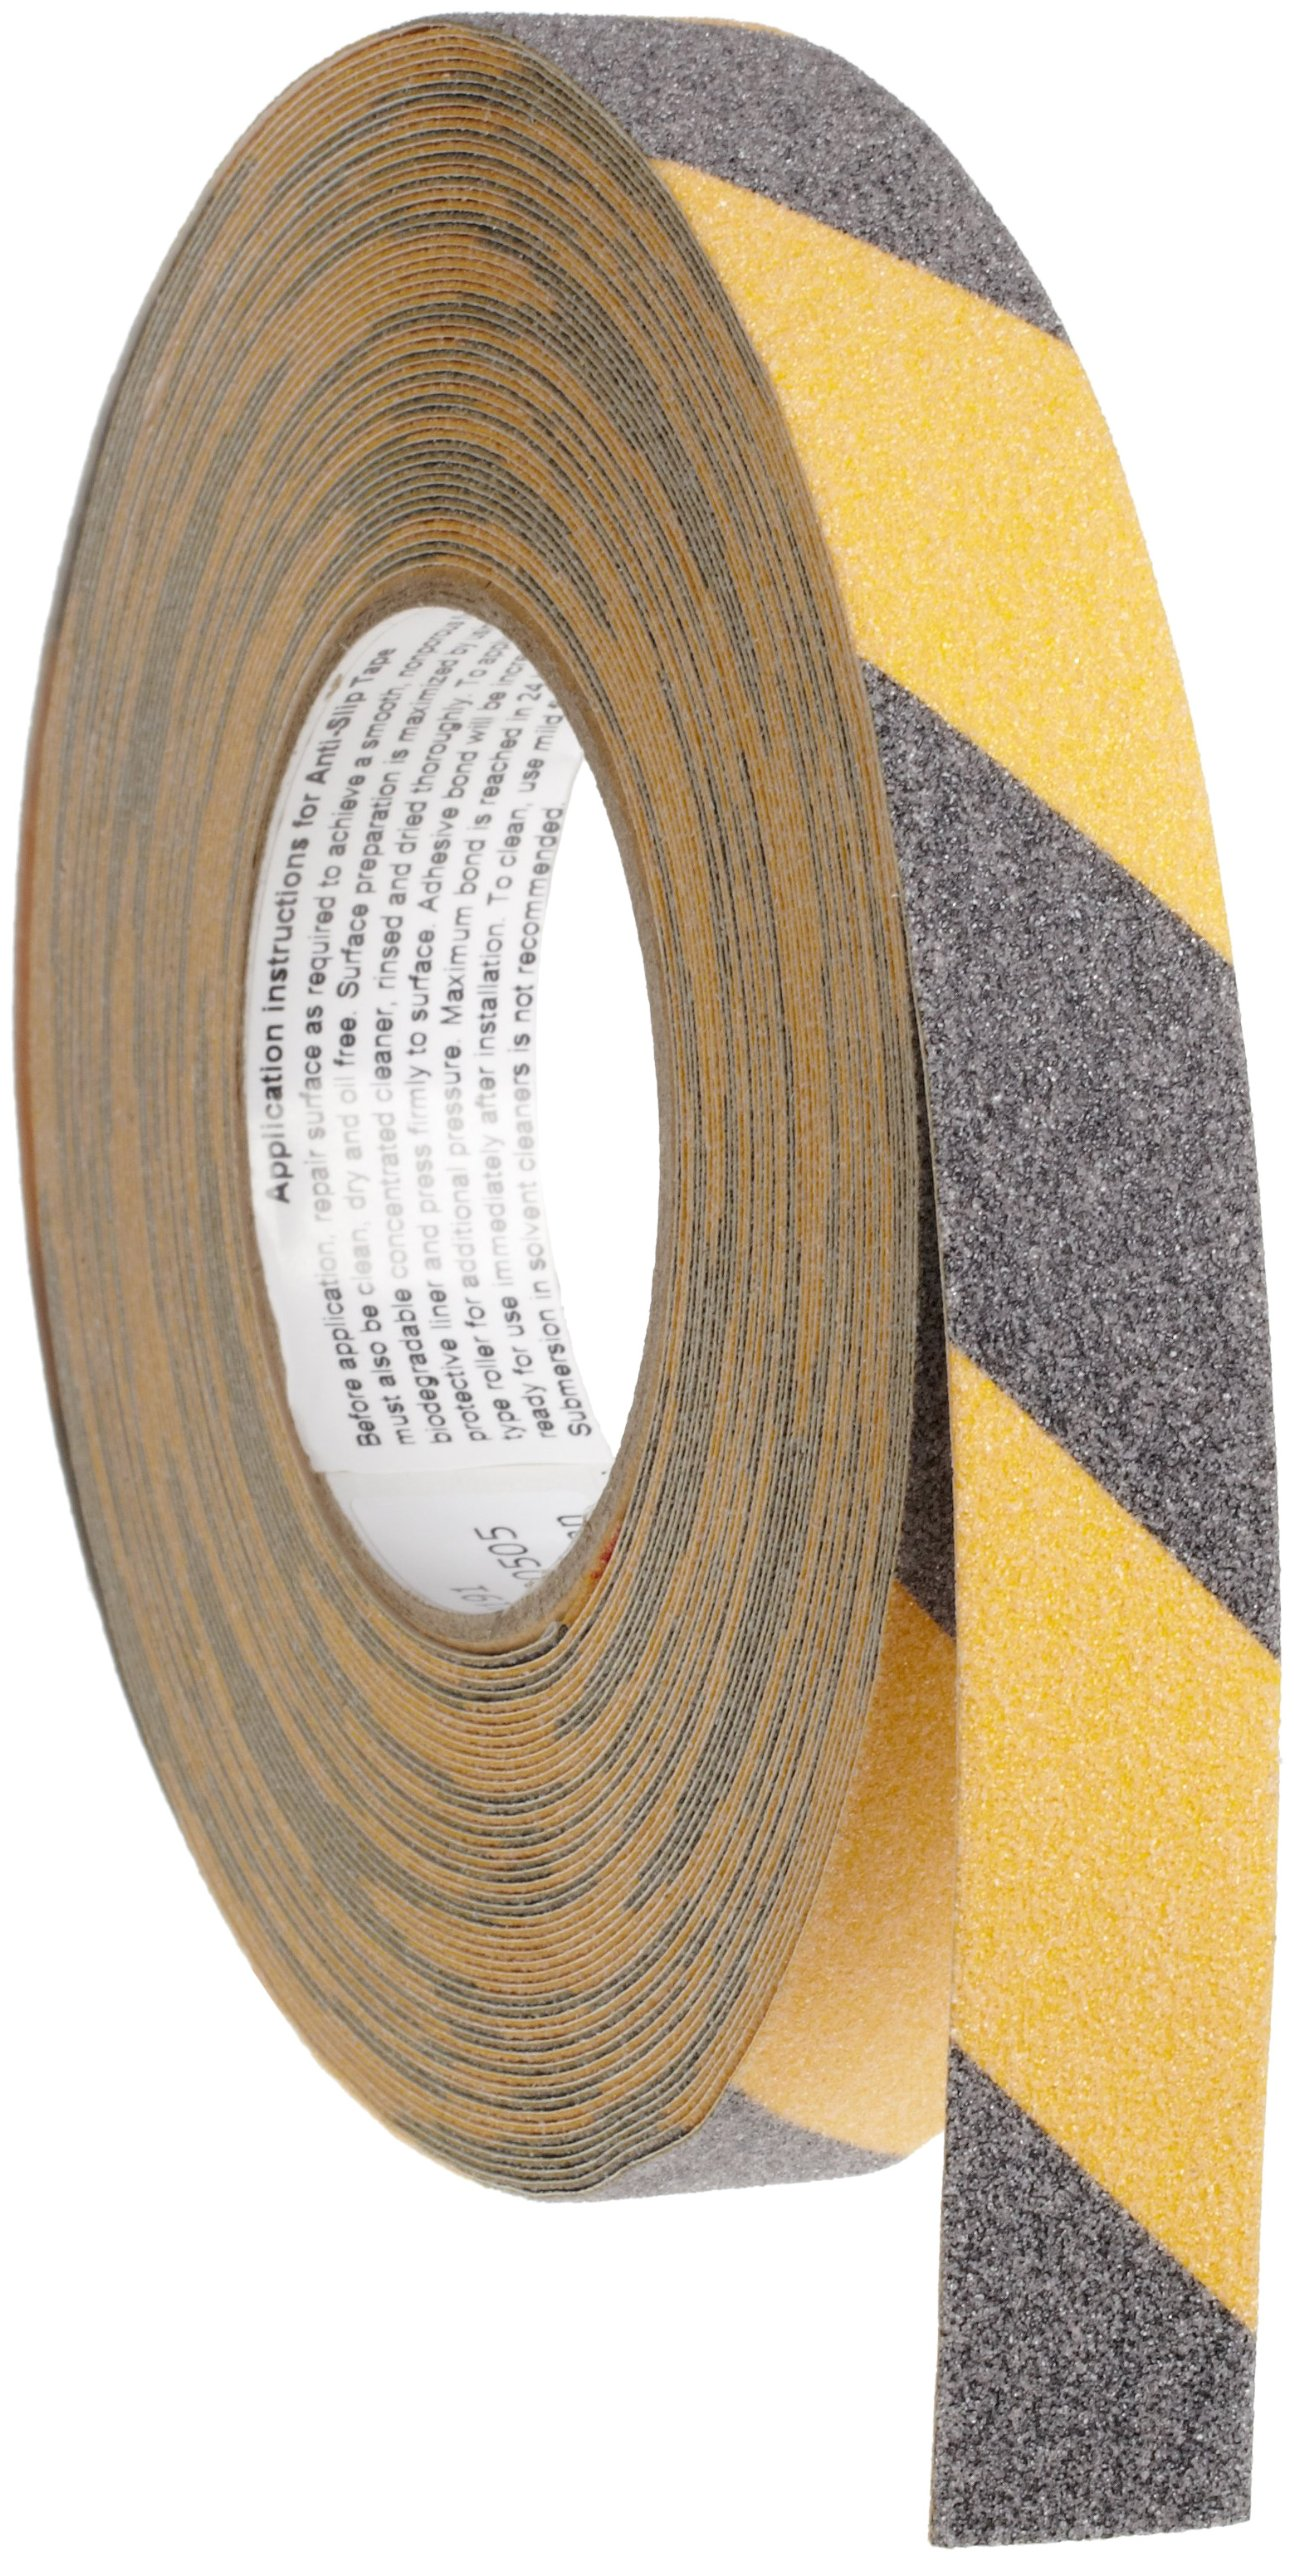 Brady 60' Length, 1'' Width, B-916 Grit-Coated Polyester Tape, Striped Special Black And Yellow Color Anti-Skid Tape